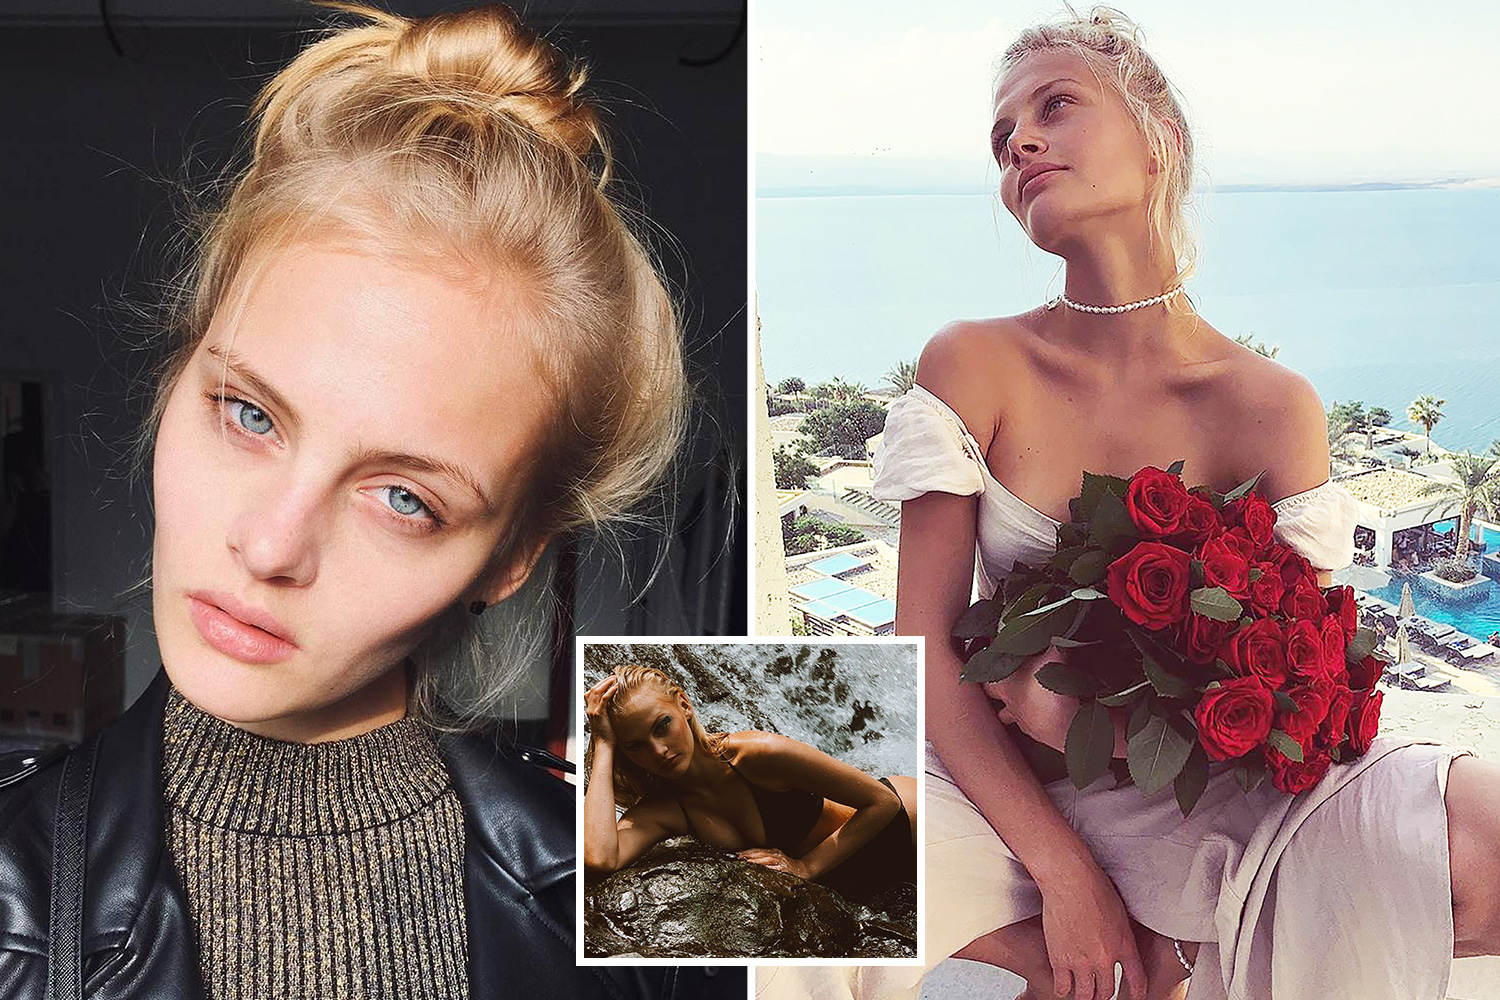 The Vogue model left the fight for life after falling almost naked from the third floor window at temperatures of -5 ° C - The Sun